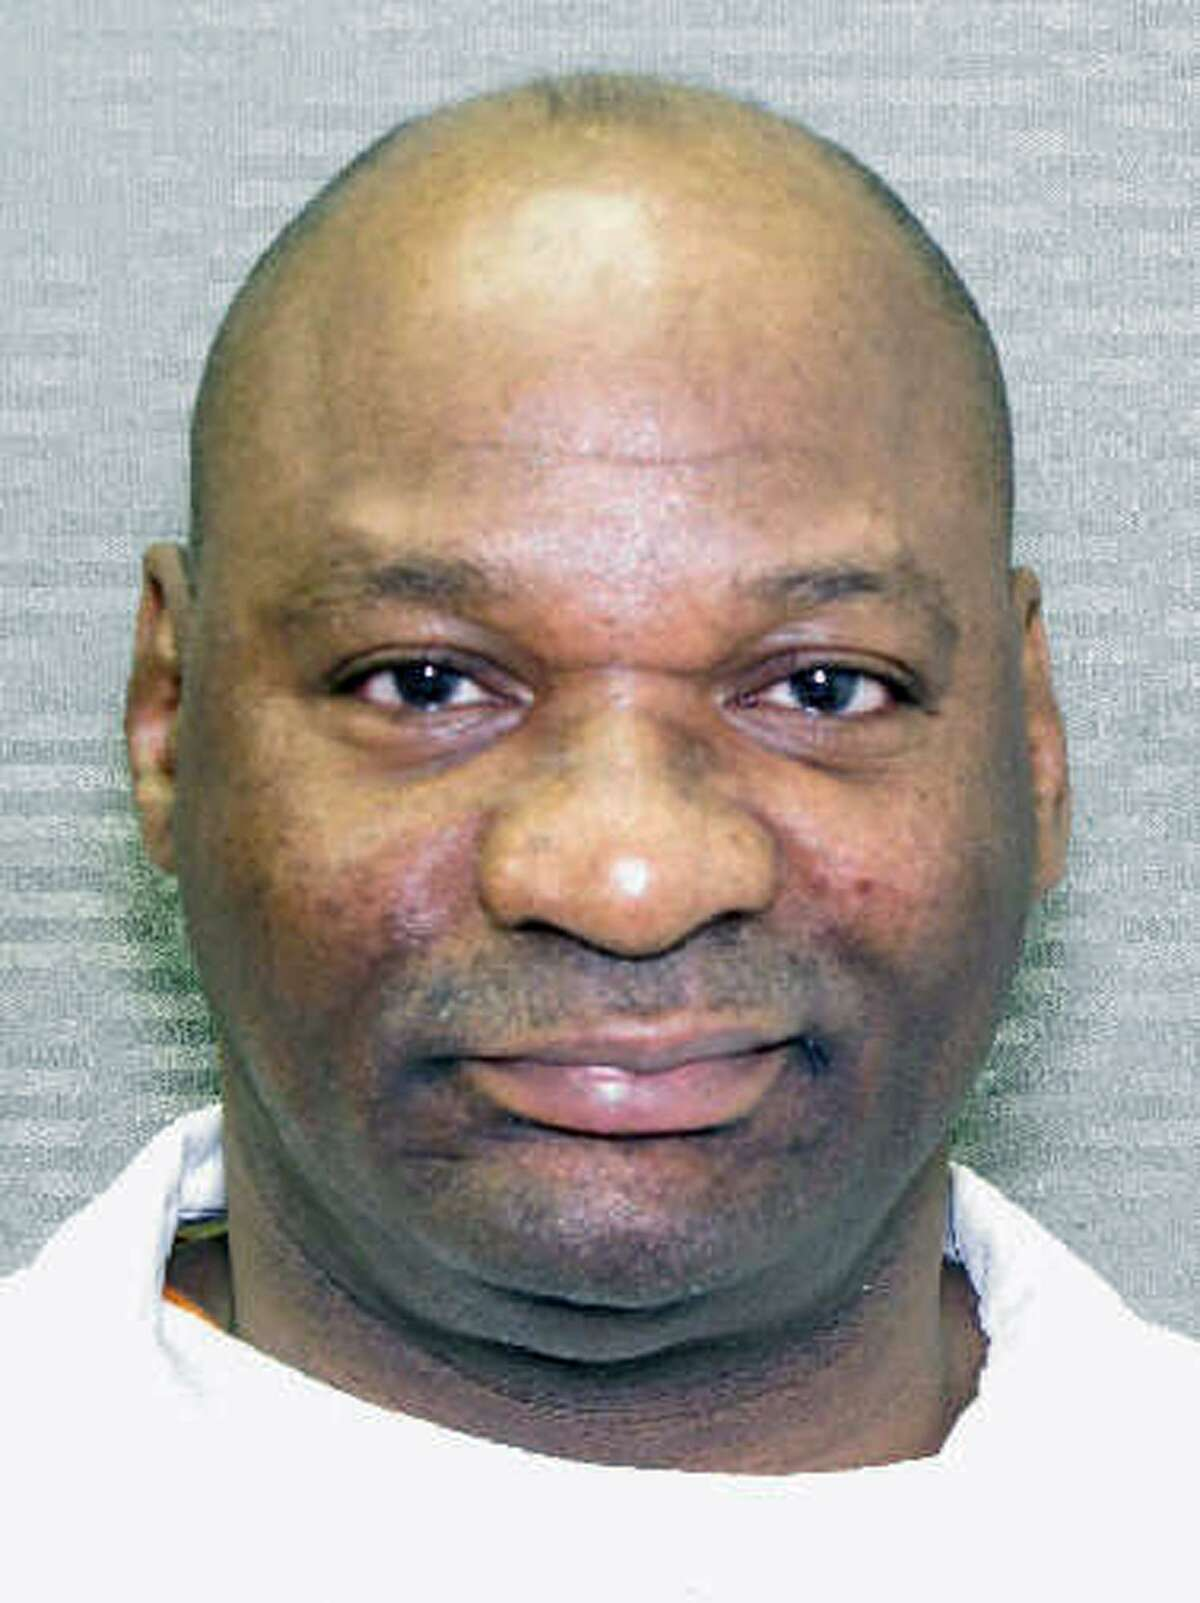 The Texas Court of Criminal Appeals has the opportunity in the case of Bobby James Moore, a death row inmate with severe intellectual disability, to bring the state's capital punishment standards in line with those established by the U.S. Supreme Court, which kicked Moore's case back to the appeals court.